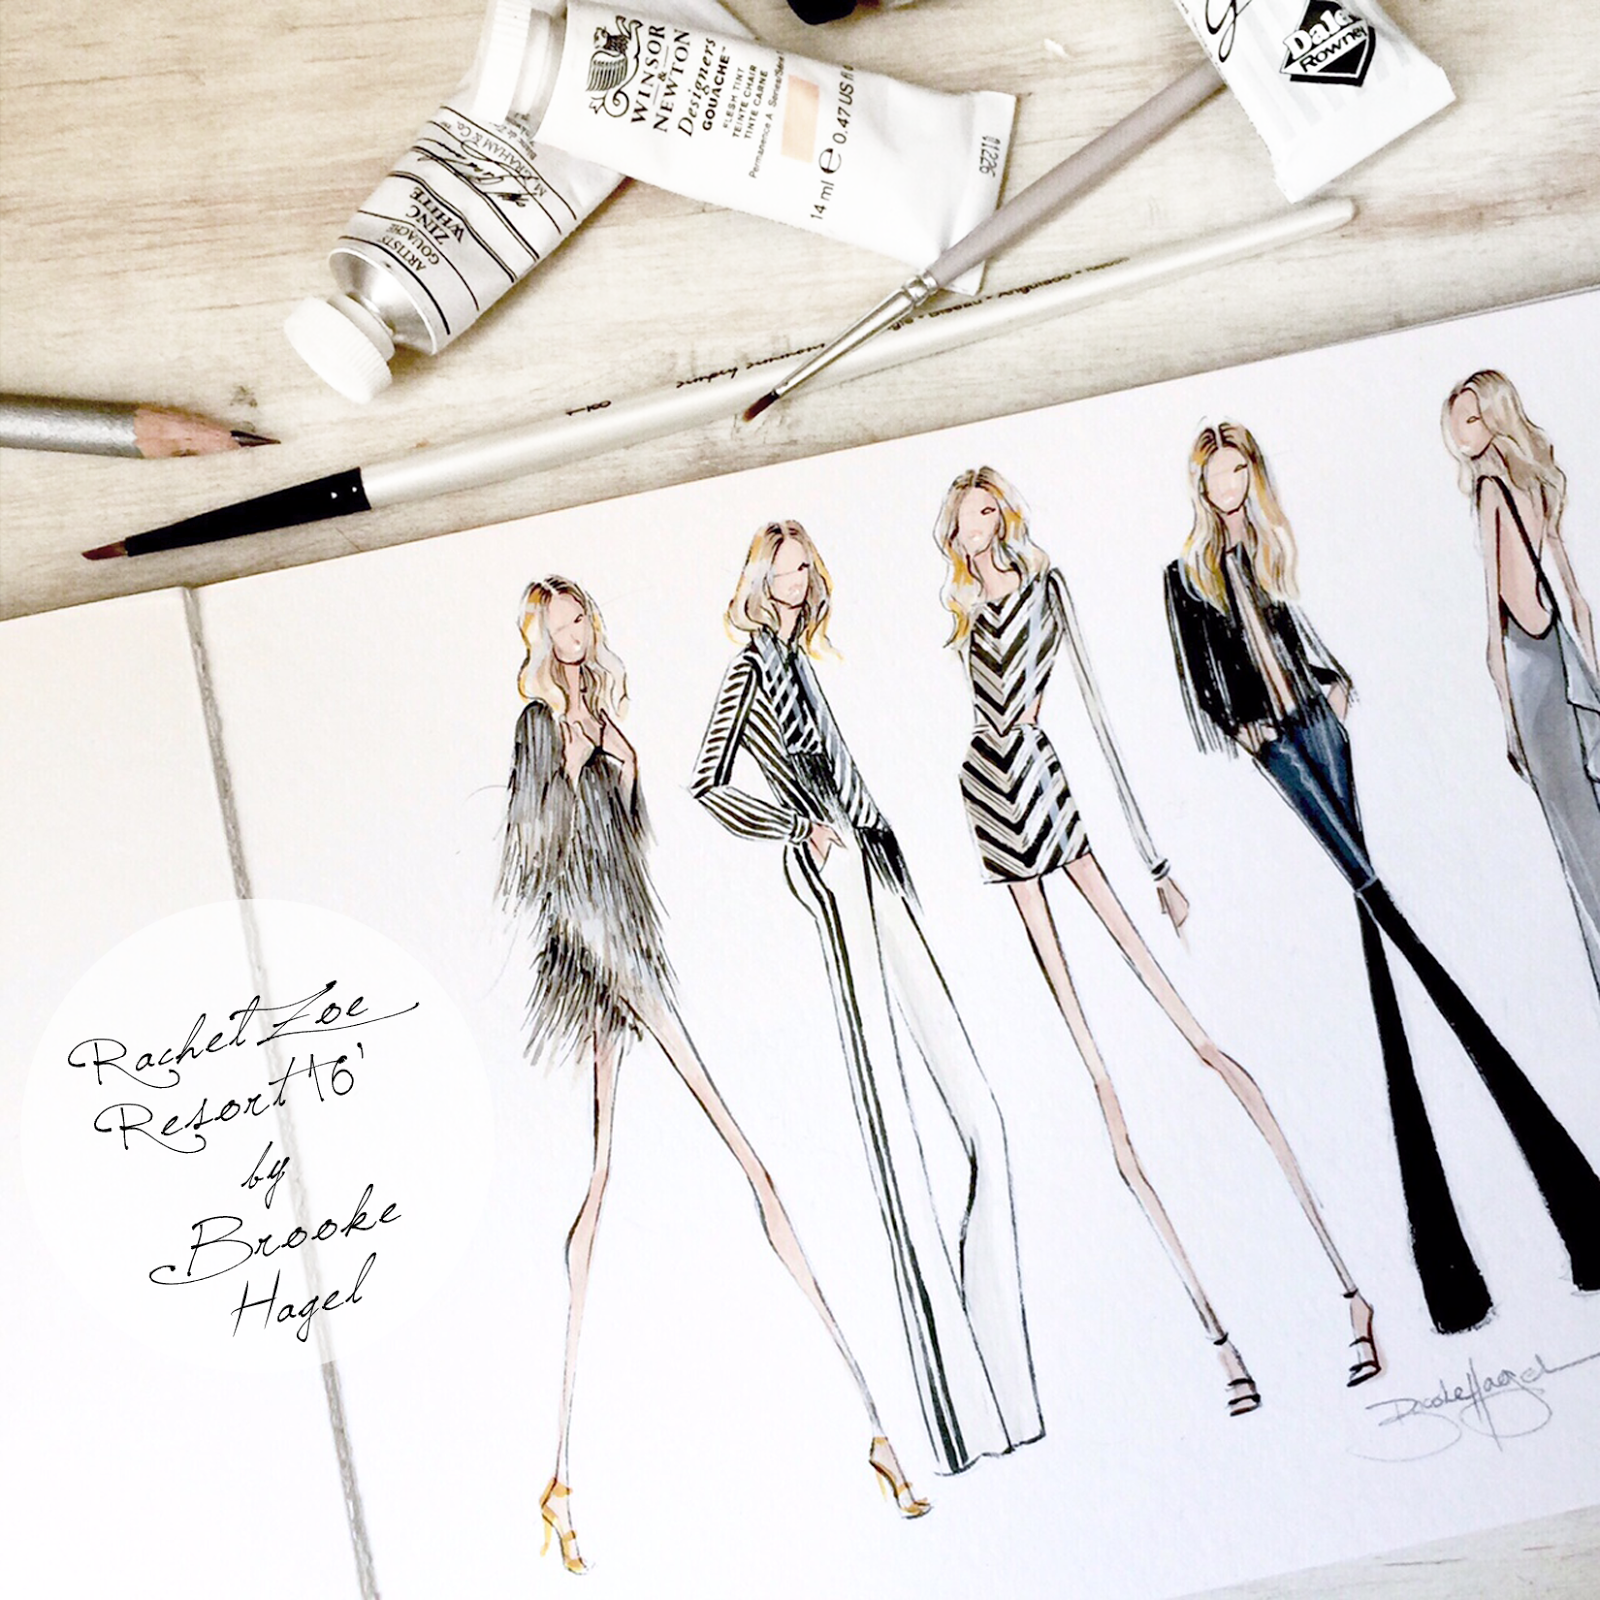 Fashion sketches new fashion sketches - Fashion Illustration Chic Fashion Sketches Brooke Hagel Love One Simple Fashion Illustration For On The Wall